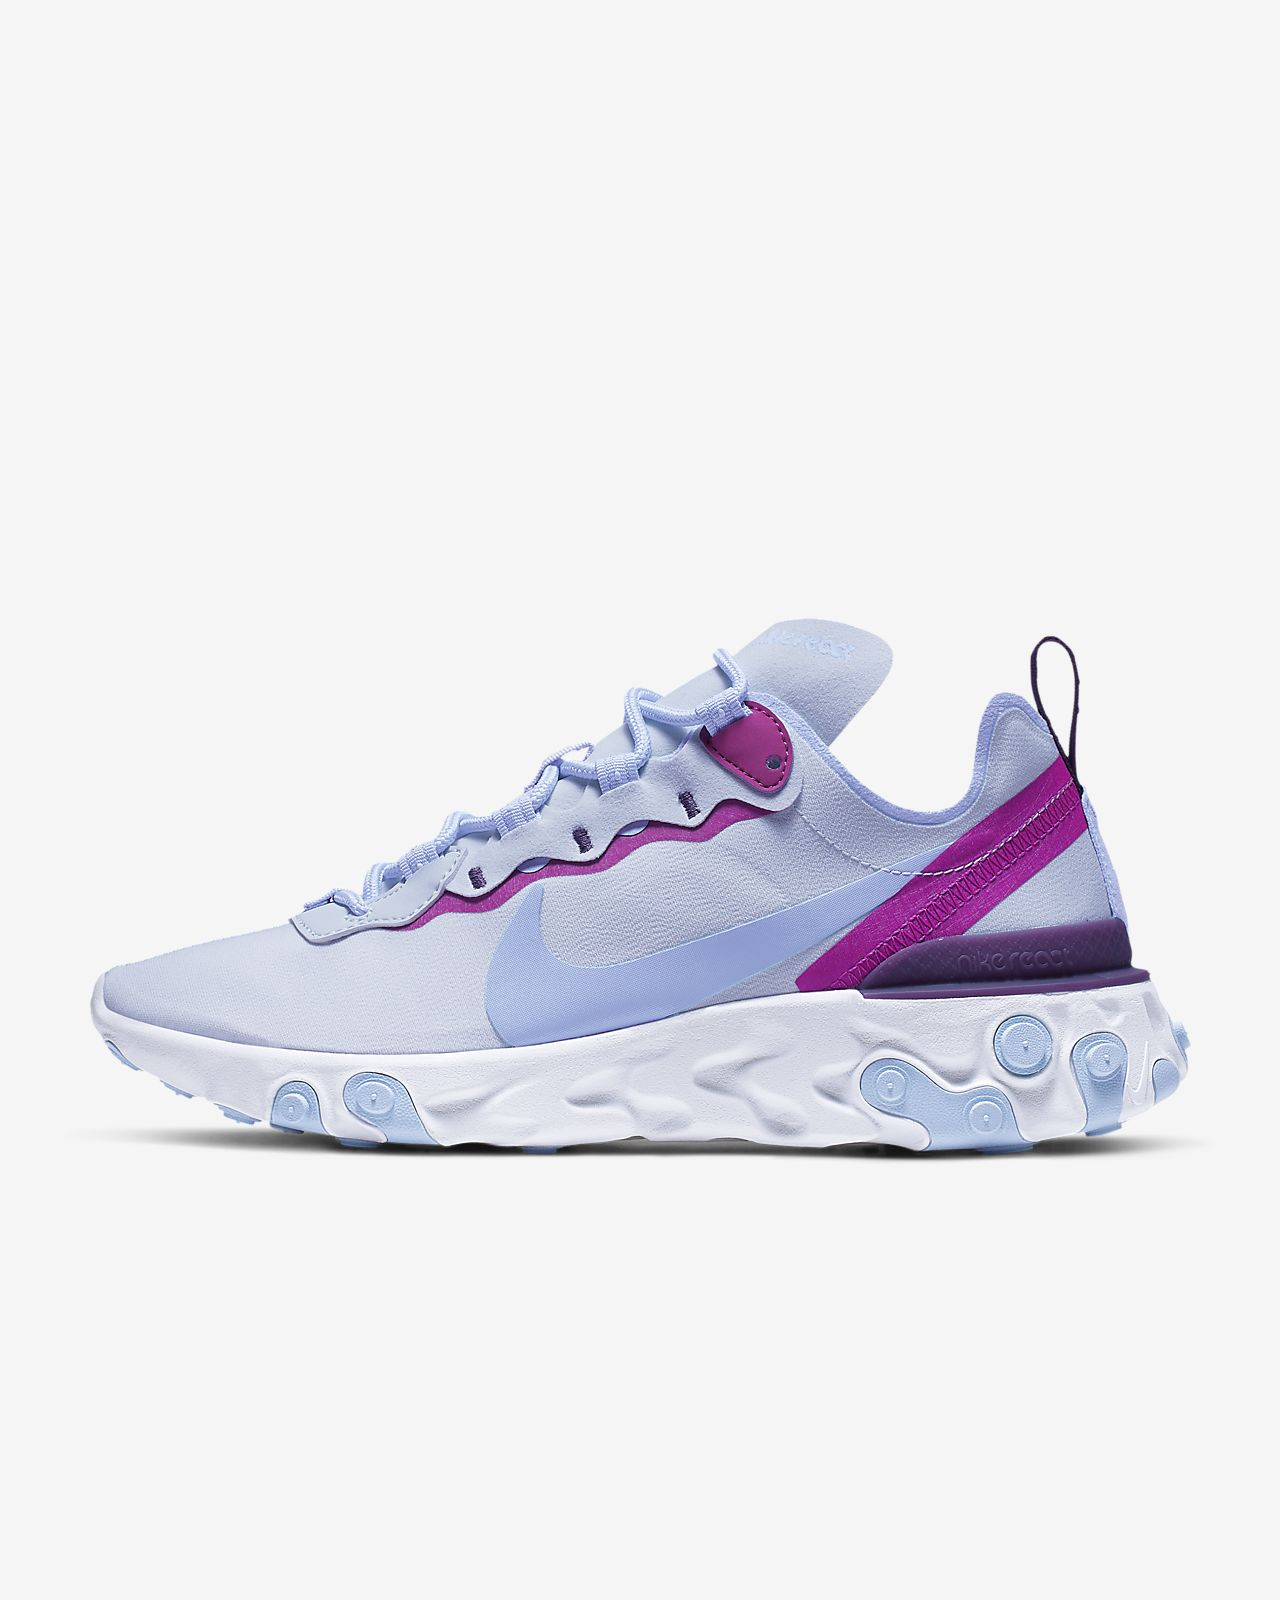 détaillant en ligne d4a9a 6e390 Nike React Element 55 Women's Shoe